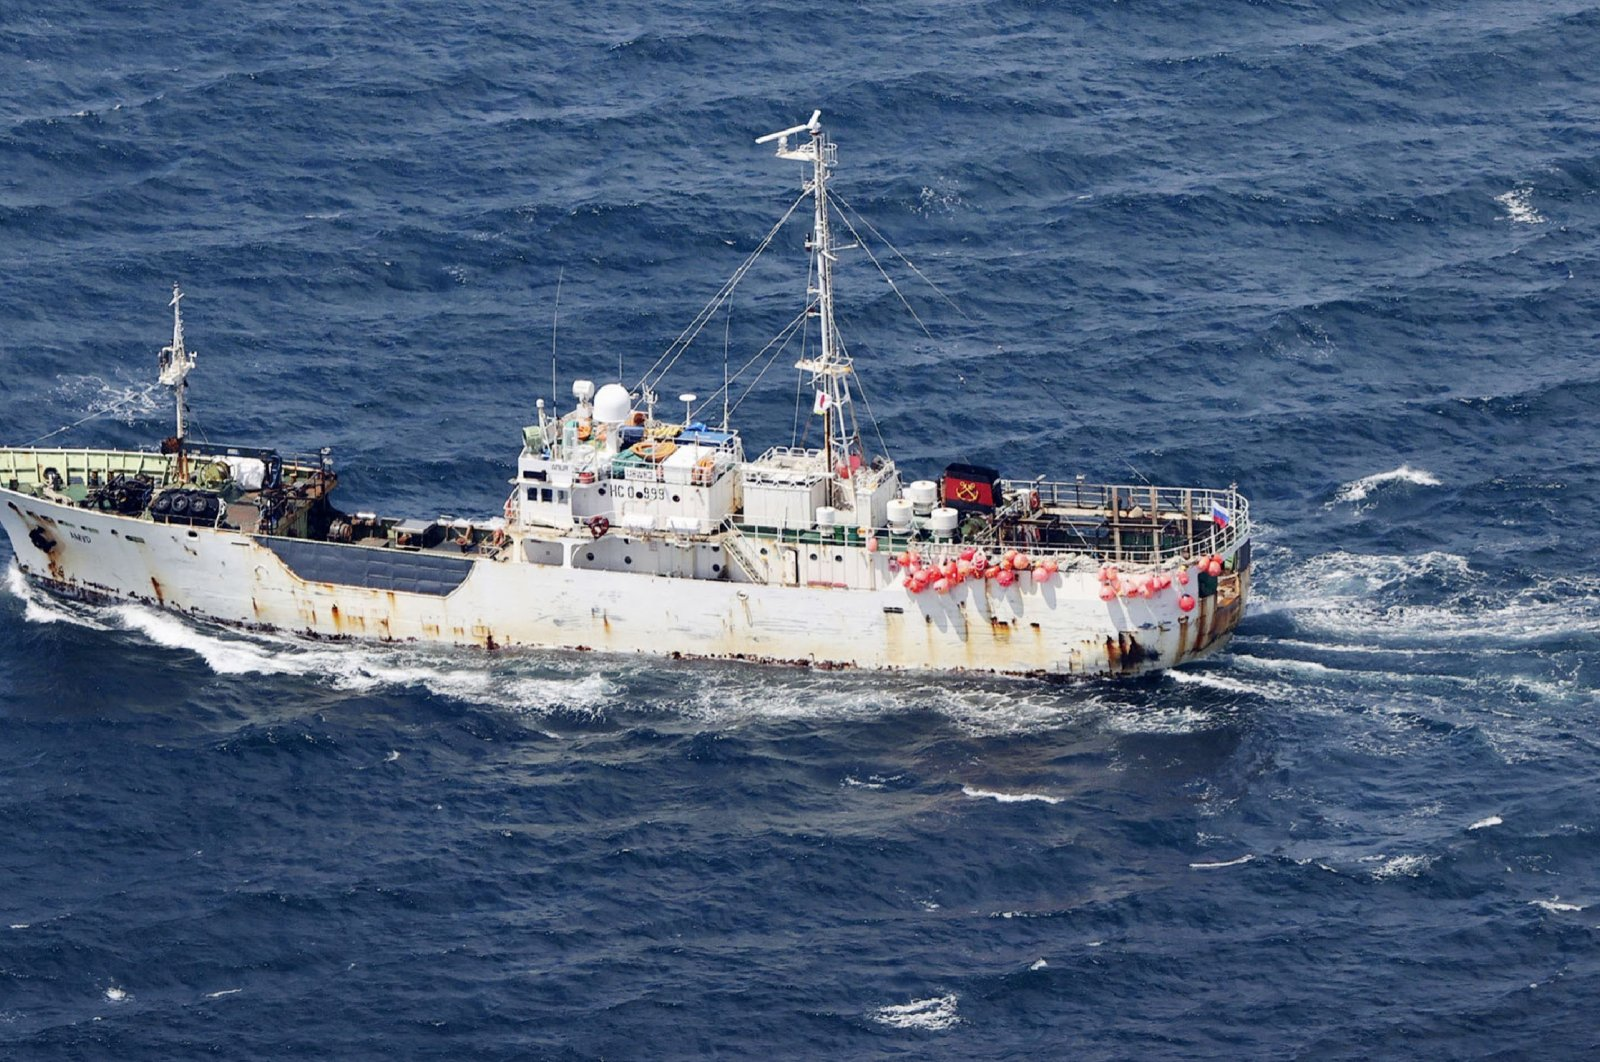 Russian cargo ship AMUR is seen after colliding with Daihachi Hokko Maru, a Japanese crab fishing vessel, in the Sea of Okhotsk, north of Japan's Hokkaido island, Wednesday, May 26, 2021.  (Kyodo News via AP)